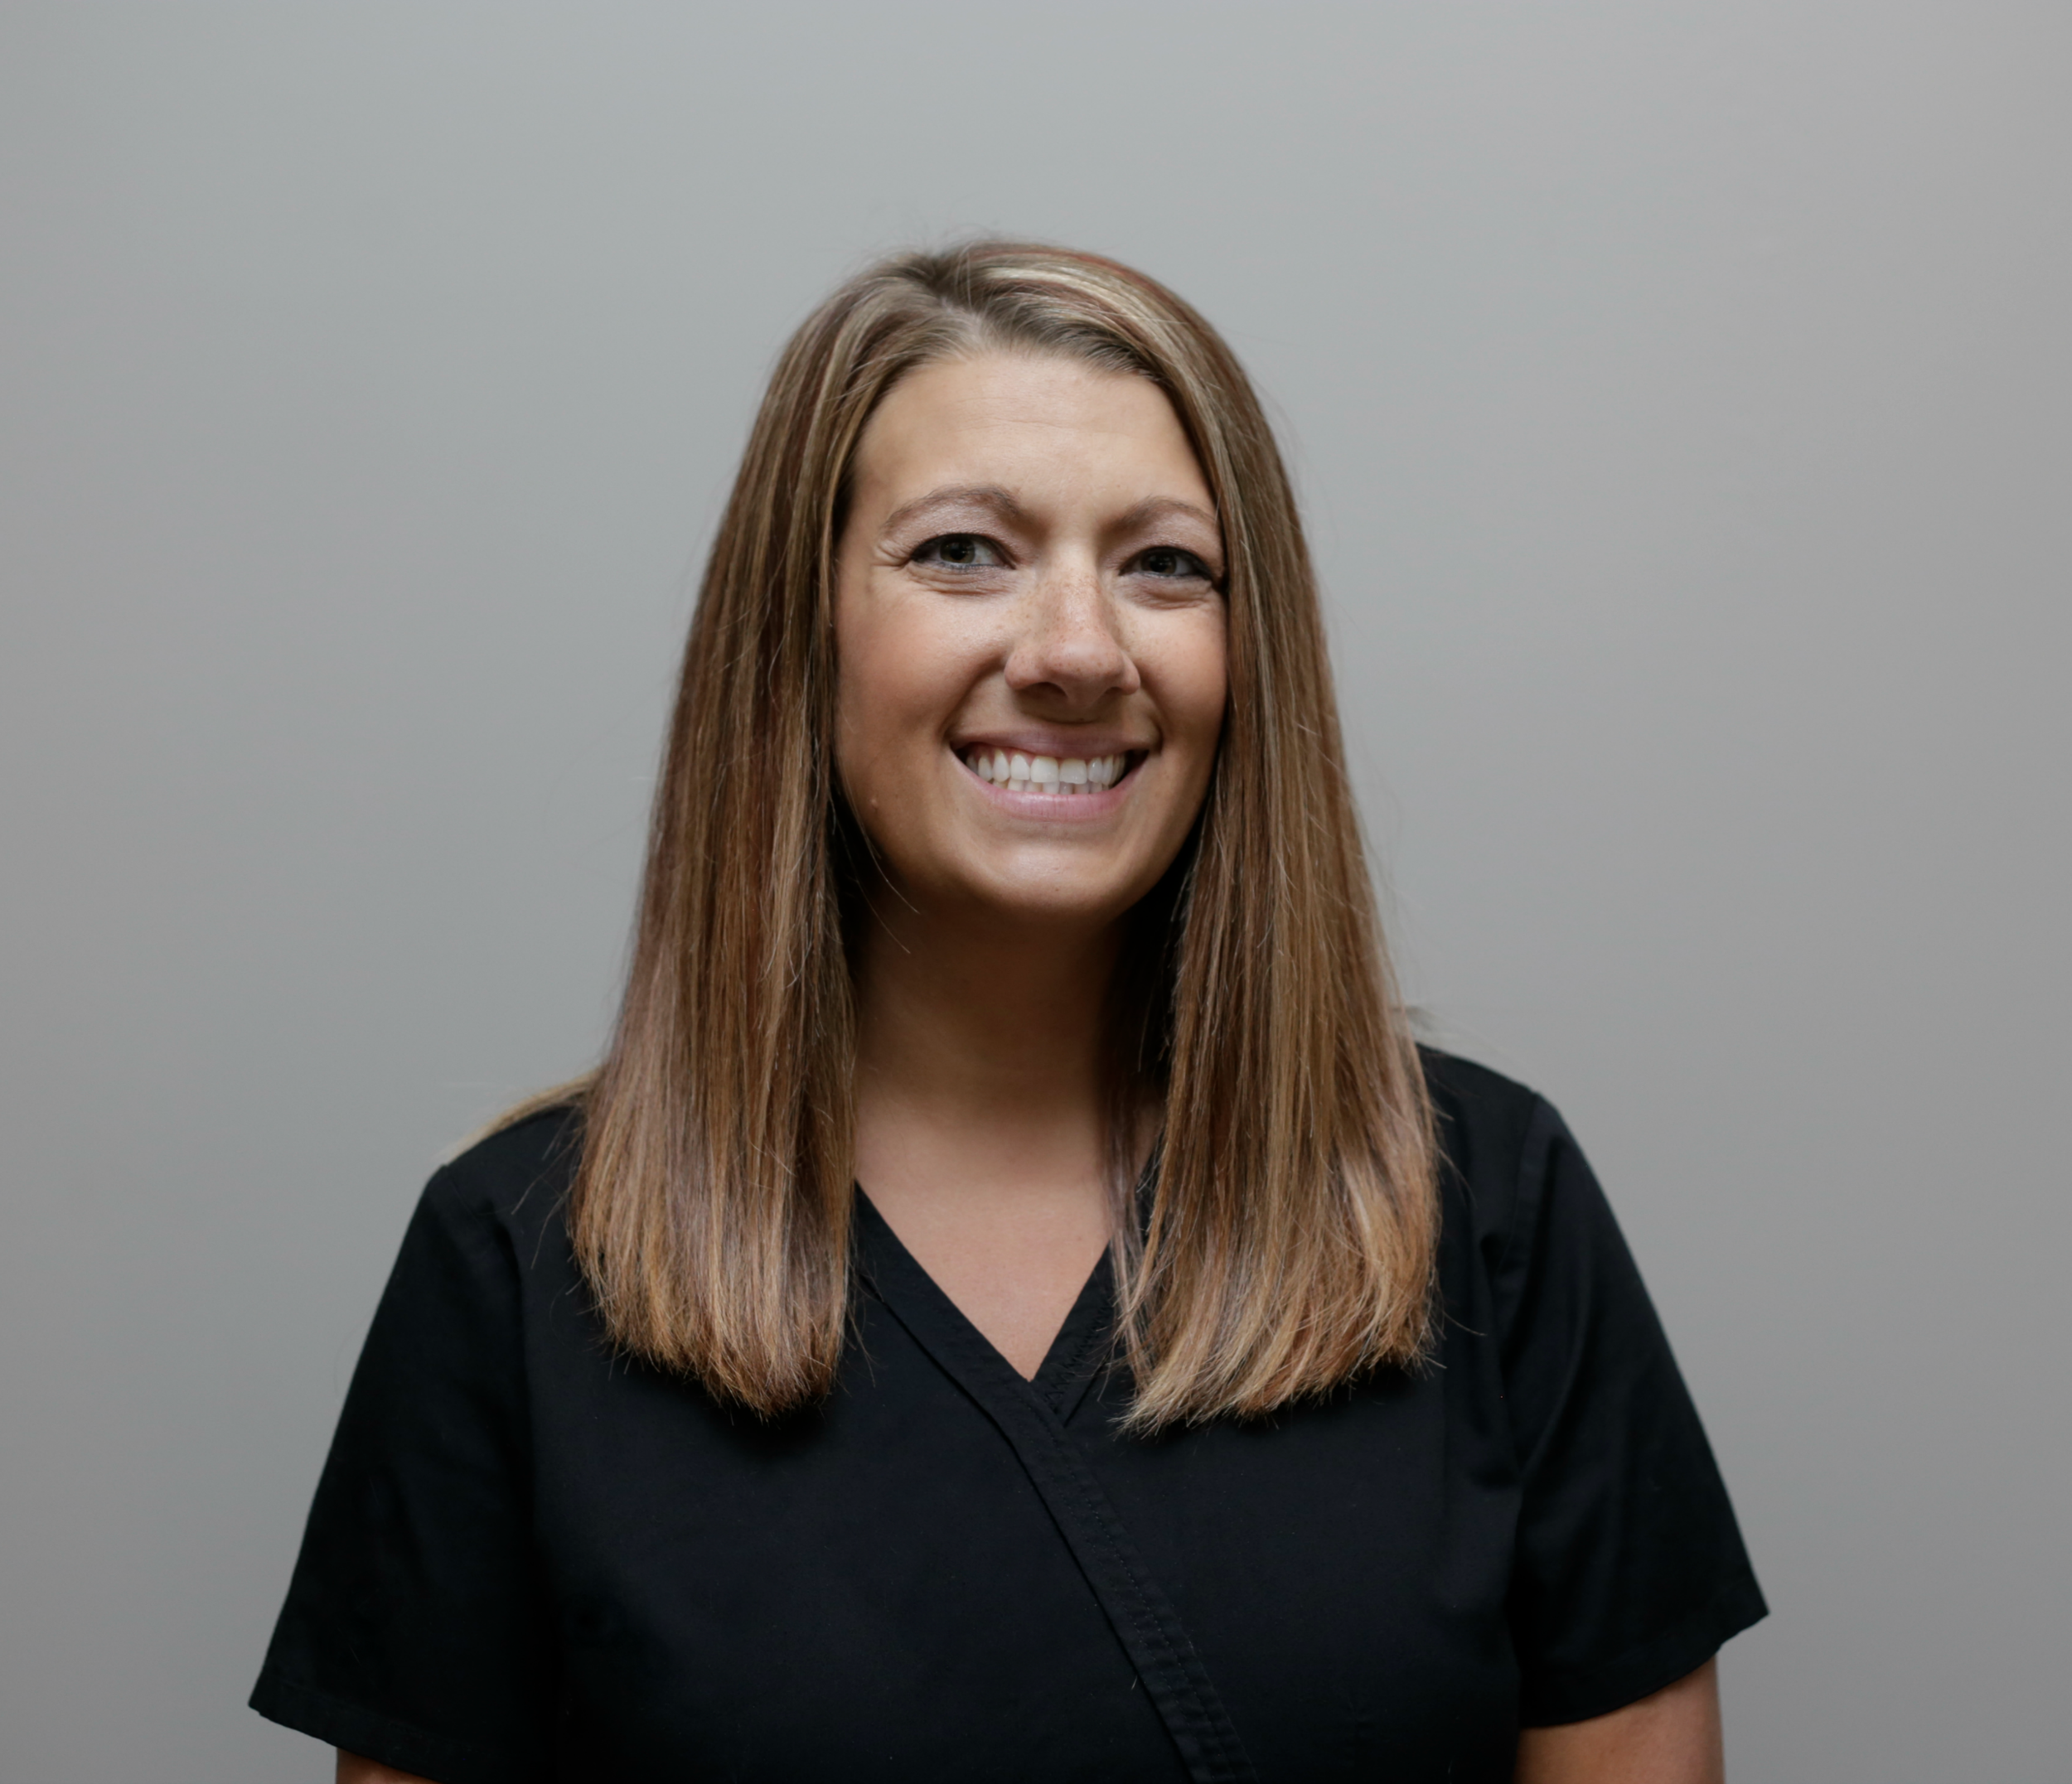 Jamie Dodd is an Ophthalmic Technician and recently started working at our office. She has been in the industry for 2 years and is very passionate about providing exceptional patient care. Jamie spends all of the time she can with her son, camping, boating, and watching him play sports. Jamie recently went skydiving, where she not only landed on the mark, but also landed a marriage proposal. Her love for Chiefs football may take a back burner to wedding planning this season.